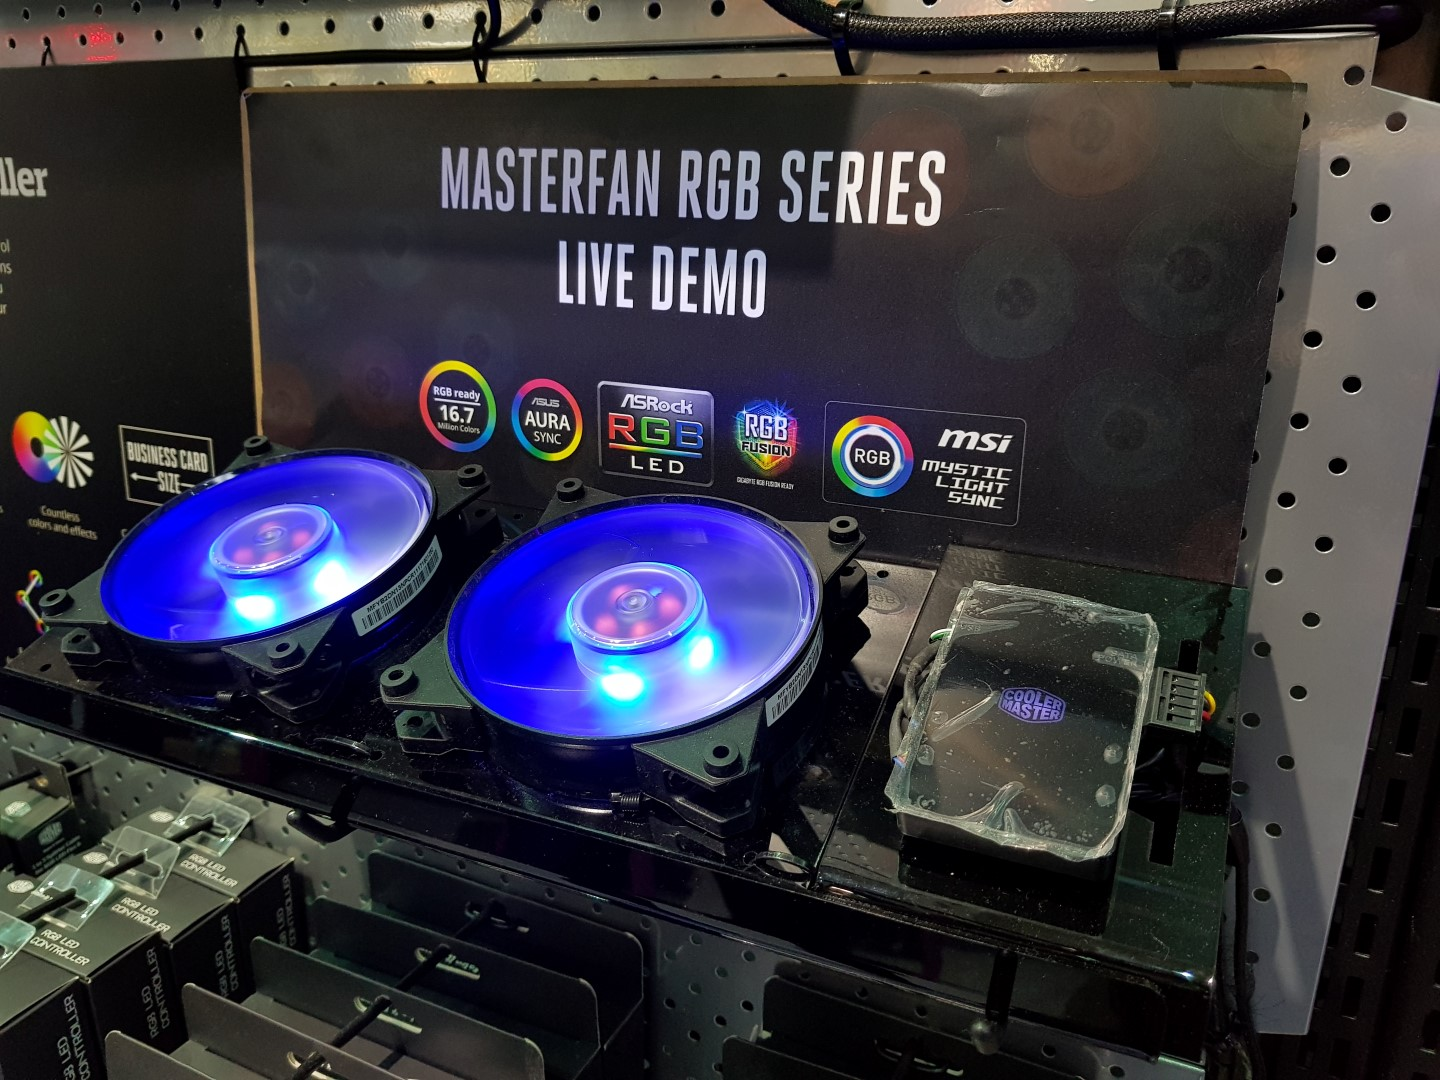 Computex 2017: Cooler Master - bold new designs and products